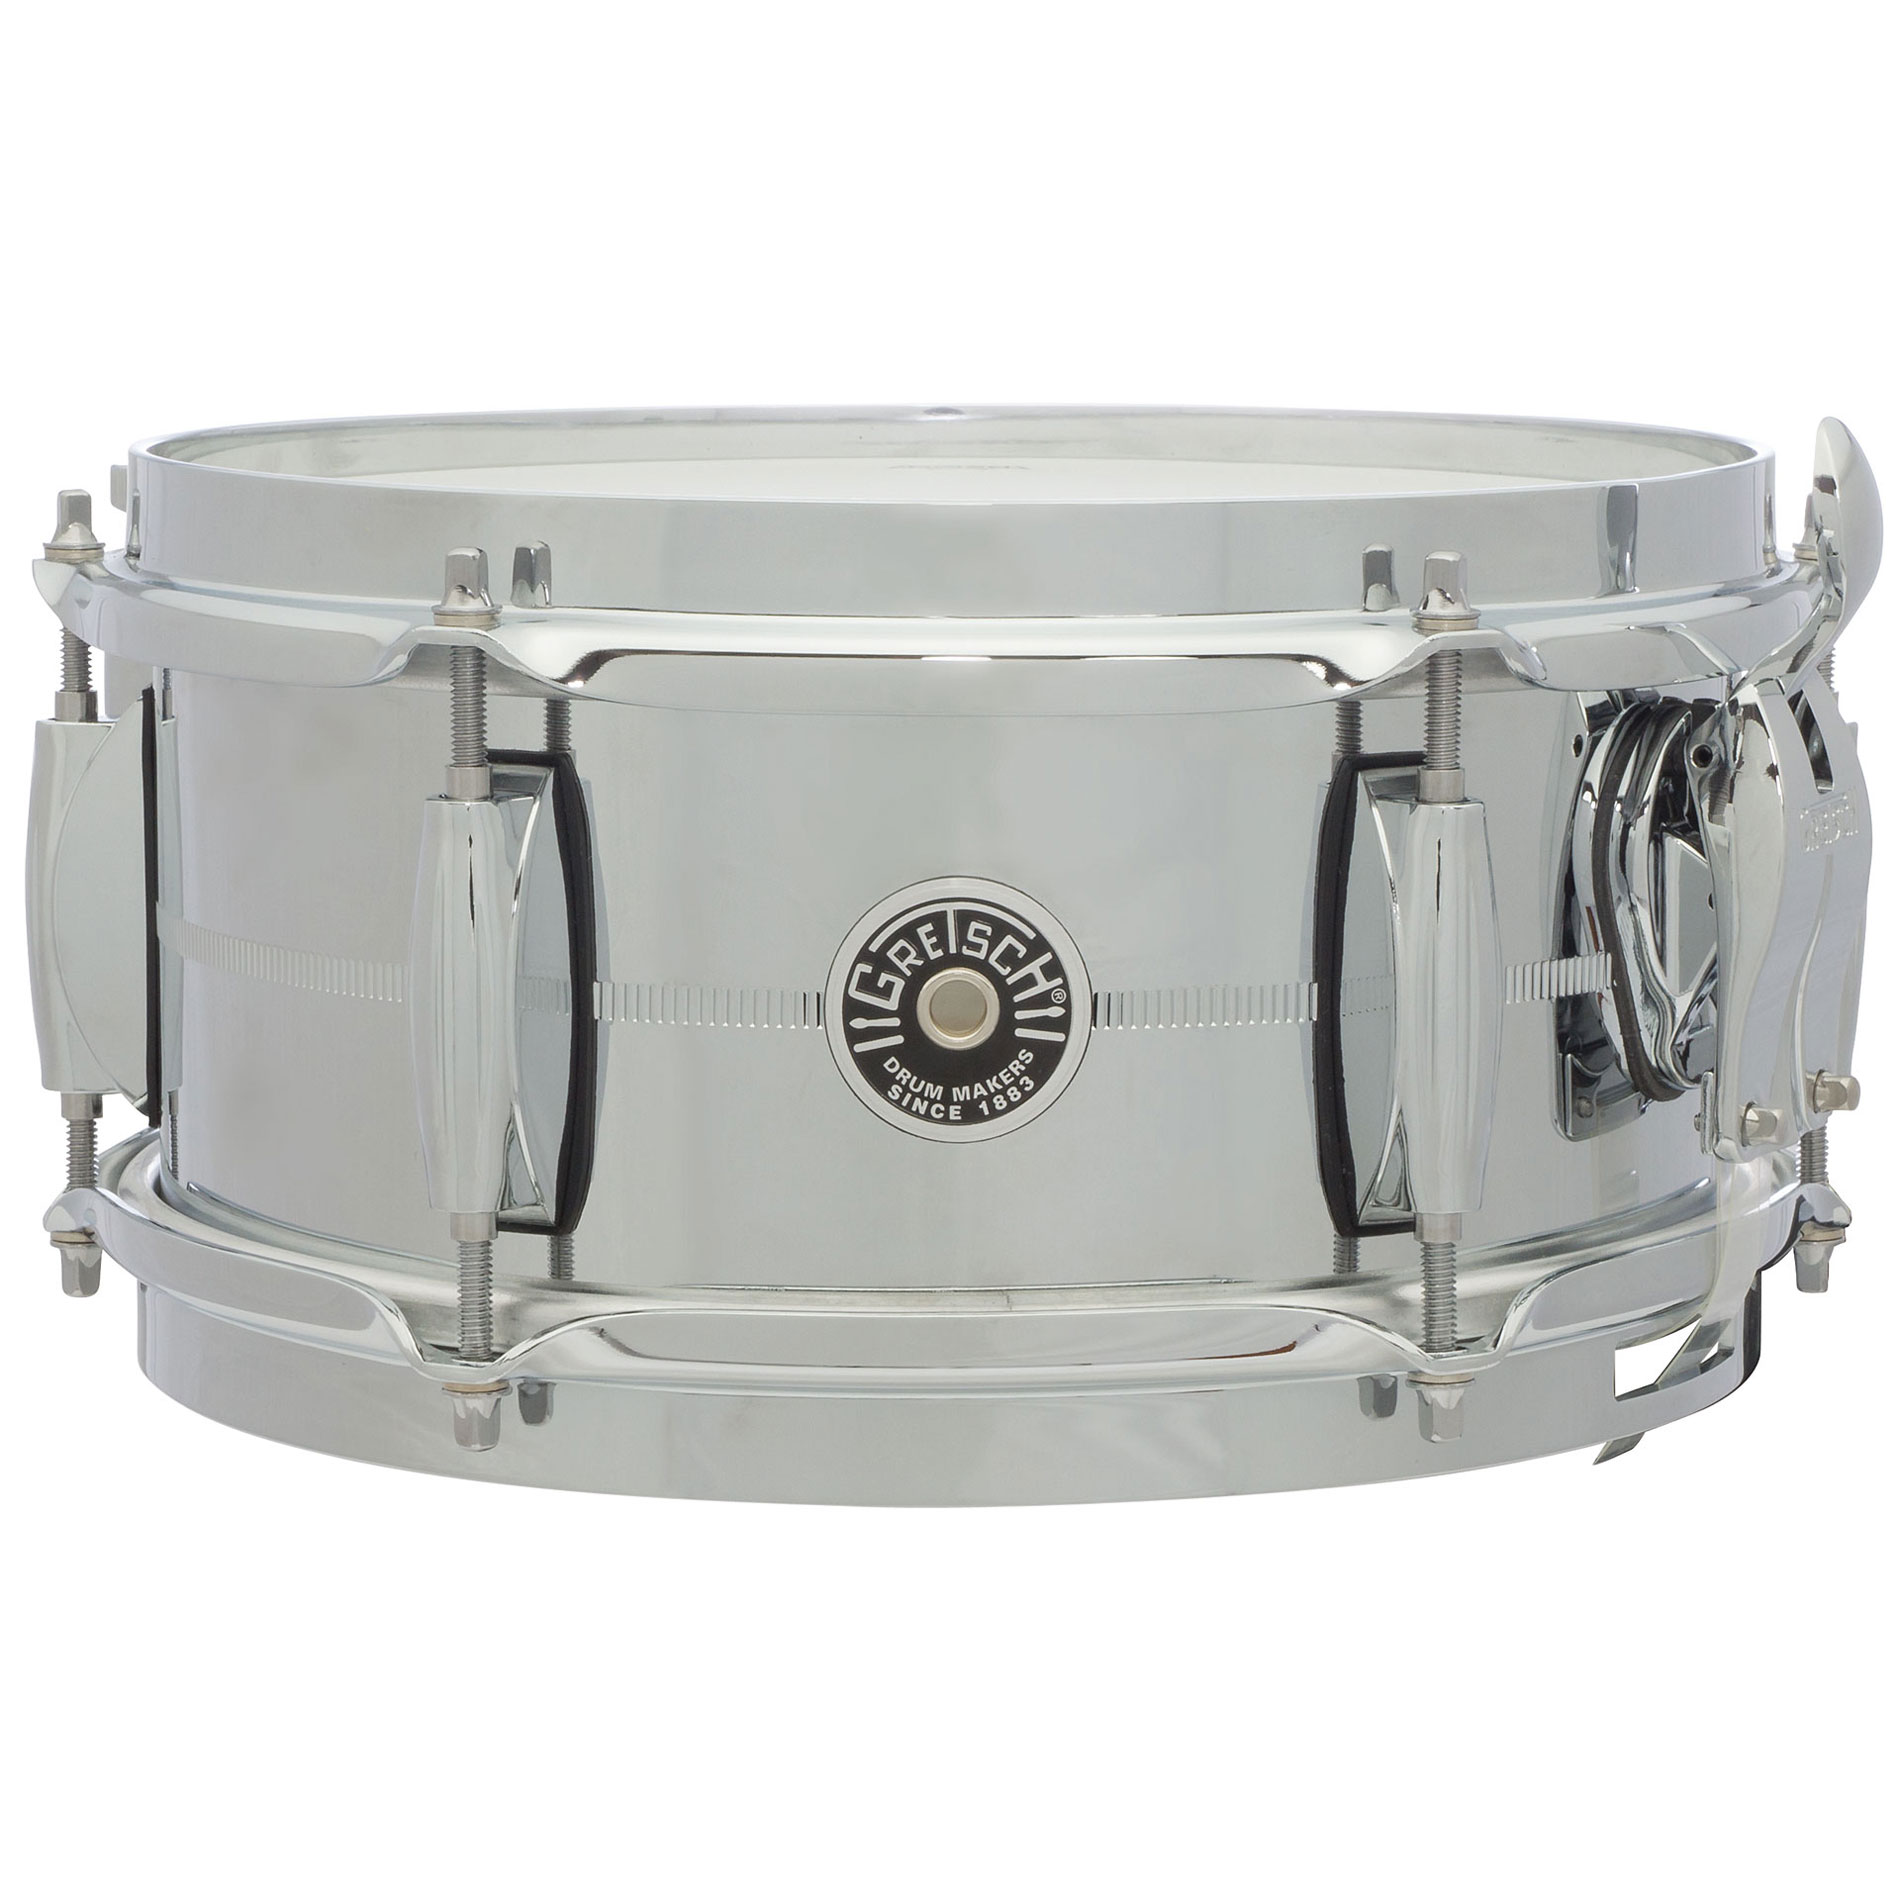 "Gretsch 5"" x 10"" USA Brooklyn Metal Chrome Steel Snare Drum"